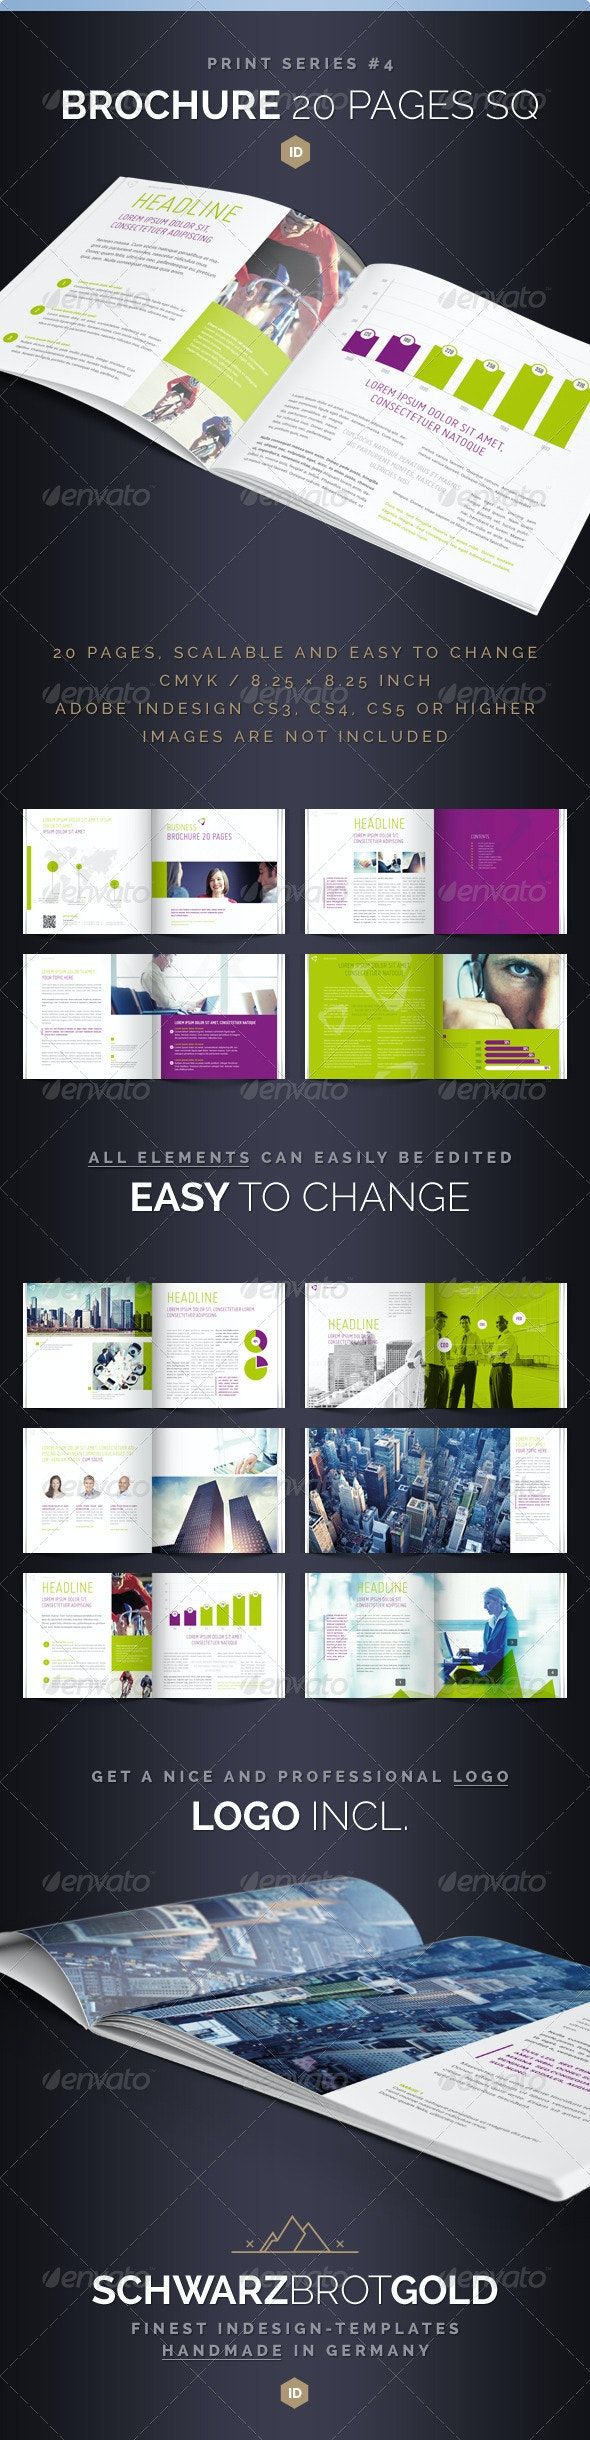 Brochure Square 20 Pages Series 4 - Informational Brochures